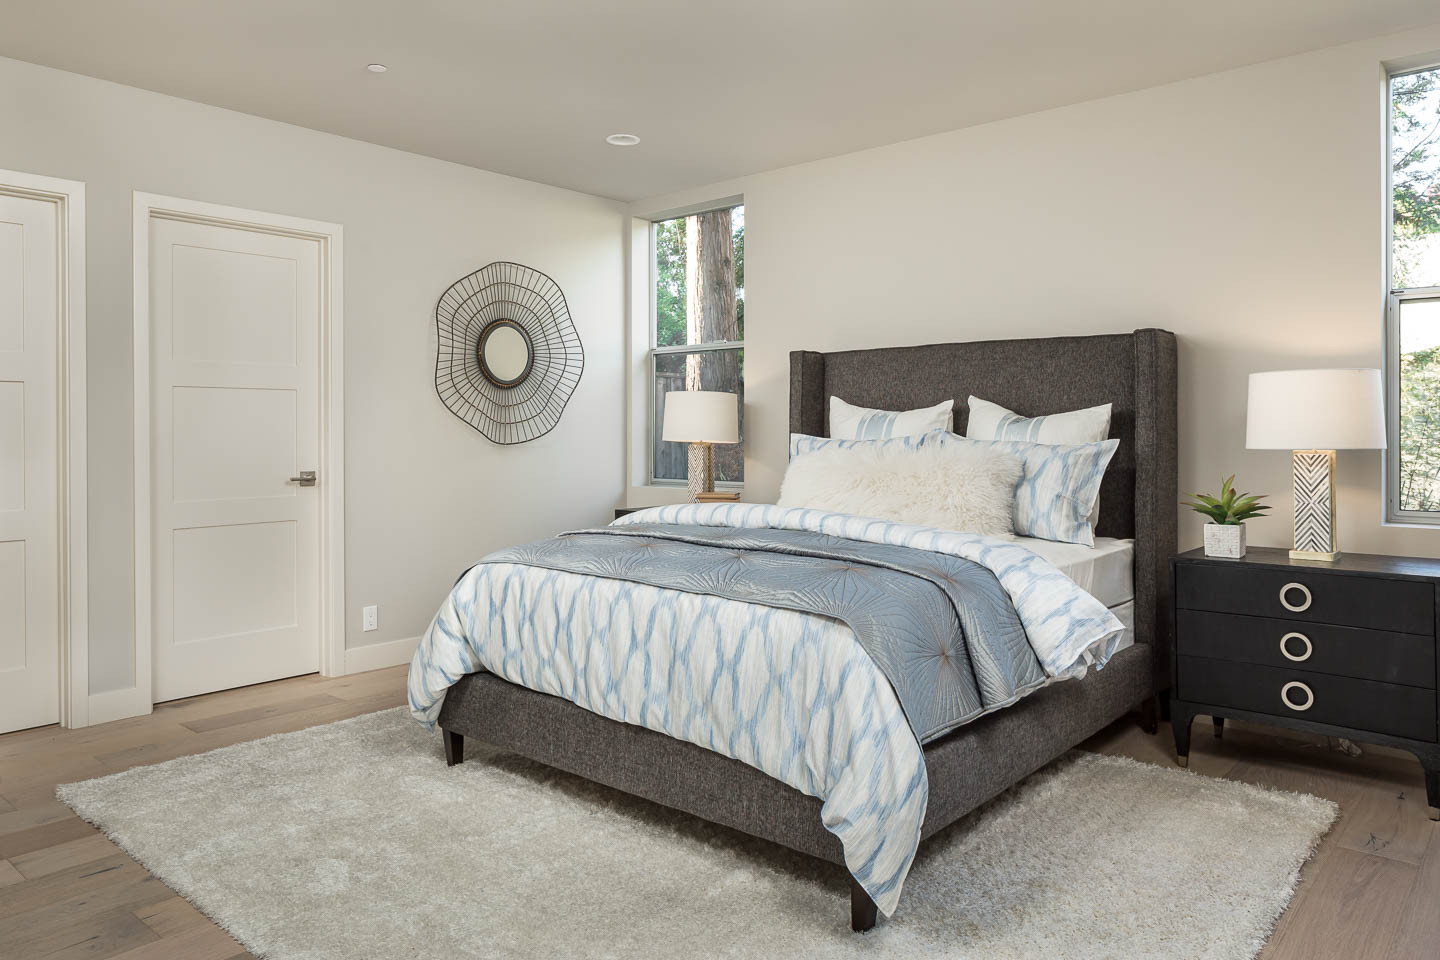 Best ideas about Revere Pewter Bedroom . Save or Pin Revere Pewter Master Bedroom Now.